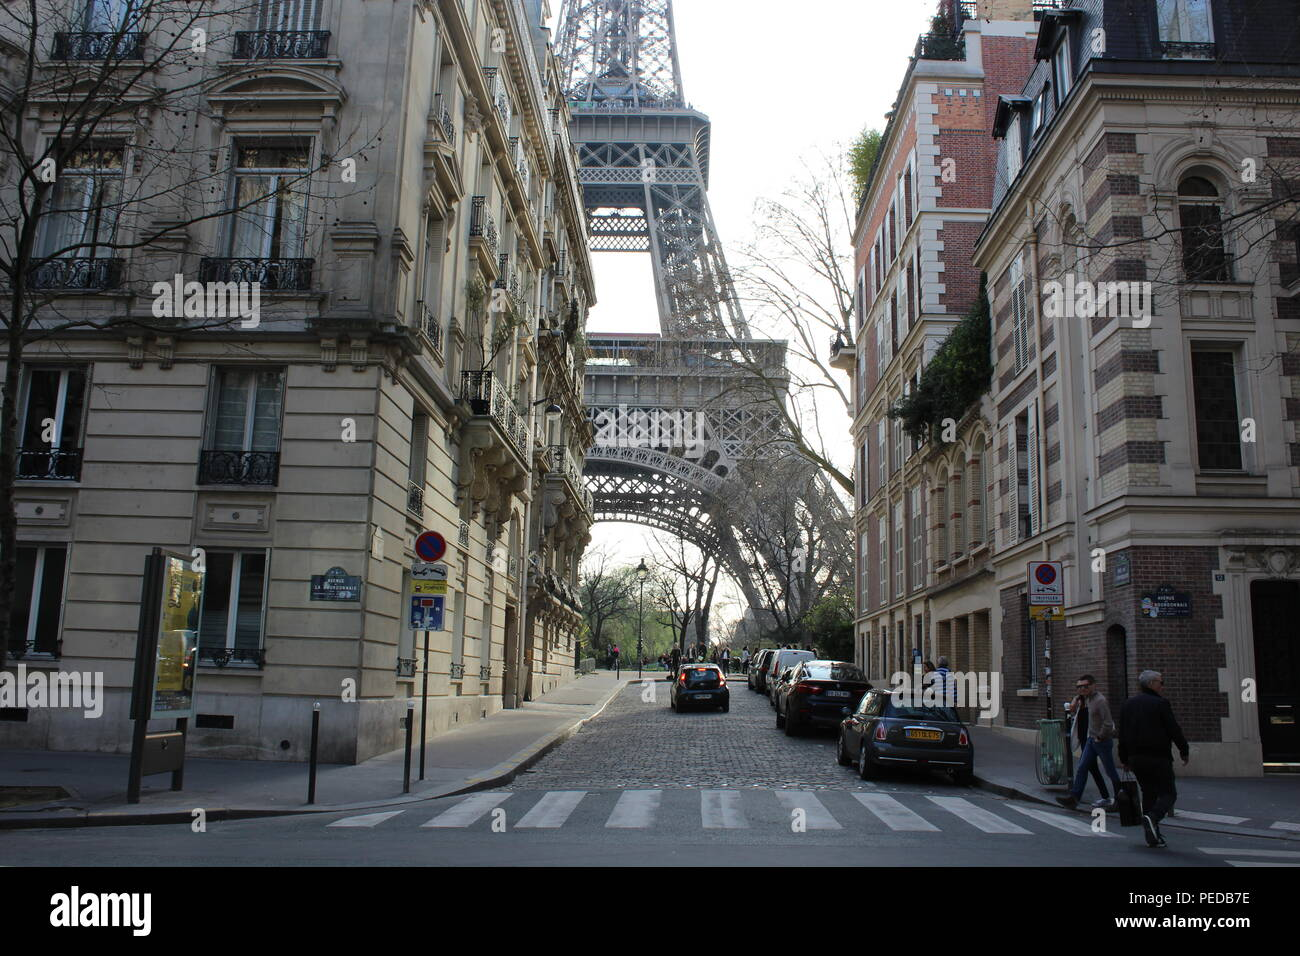 Exploration of the urban environment of Paris - Stock Image